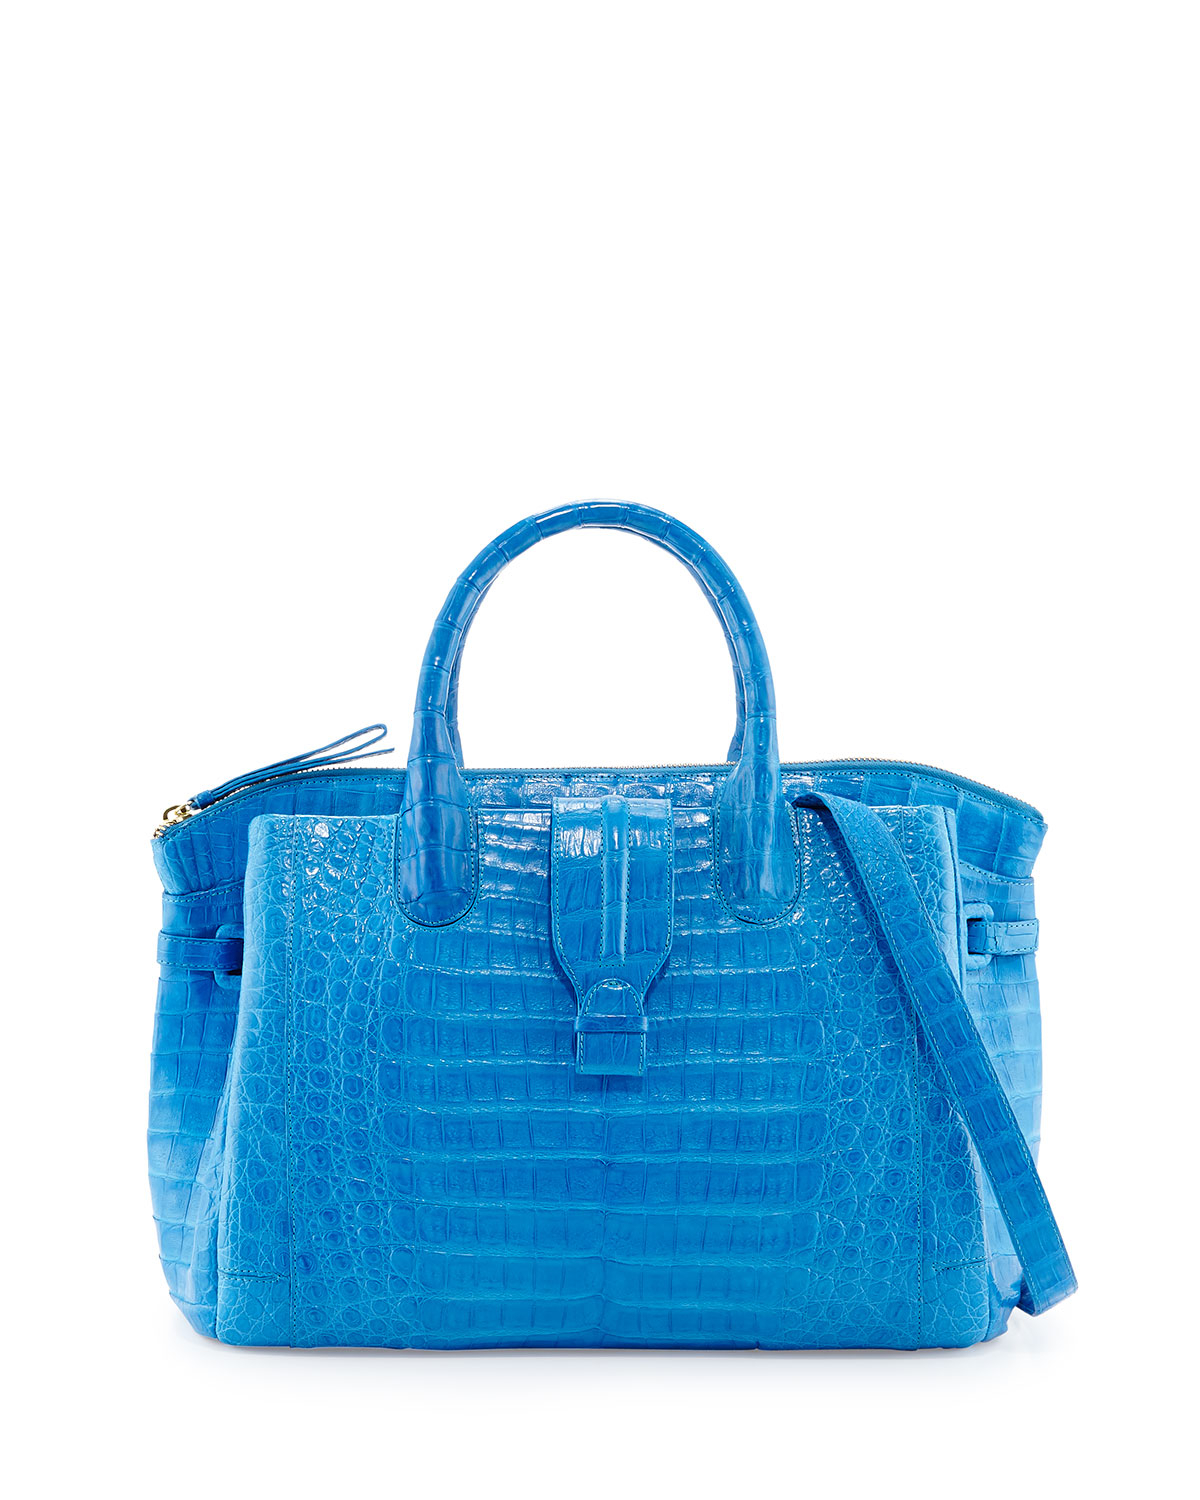 nancy gonzalez cristina medium crocodile tote bag in blue